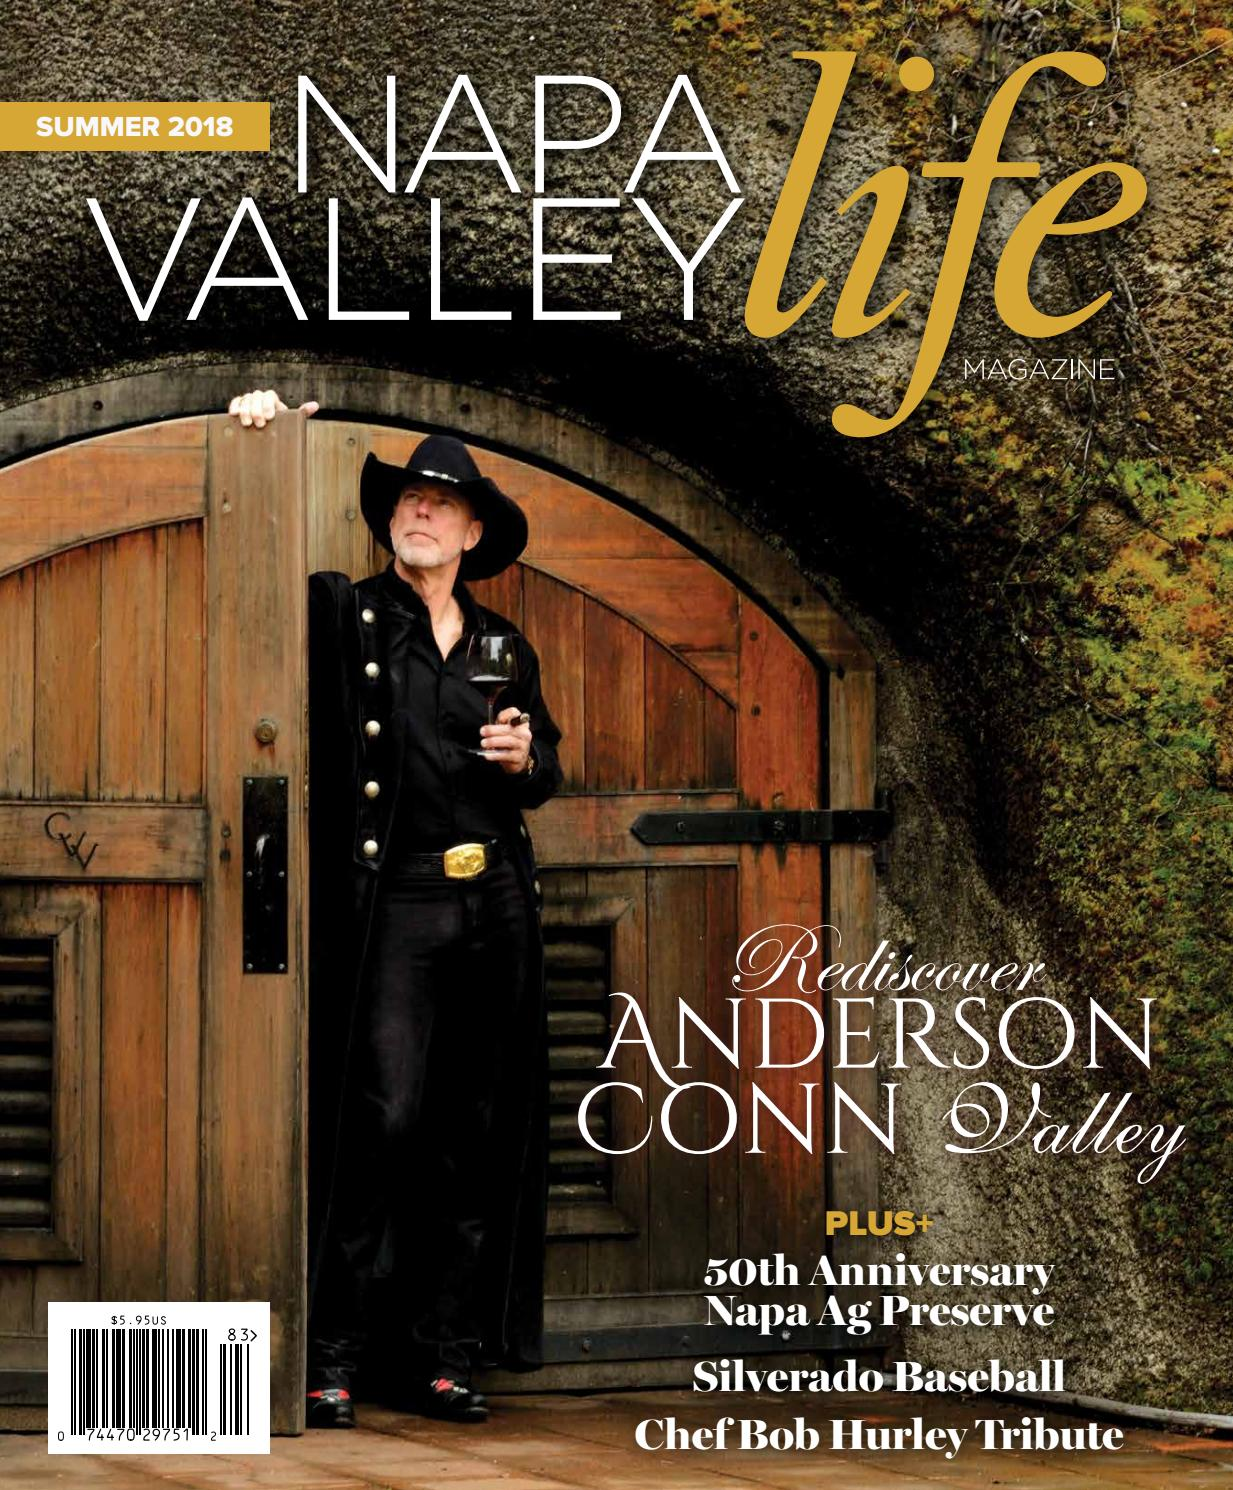 Napa Valley Life Magazine Summer 2018 Edition By Web Media